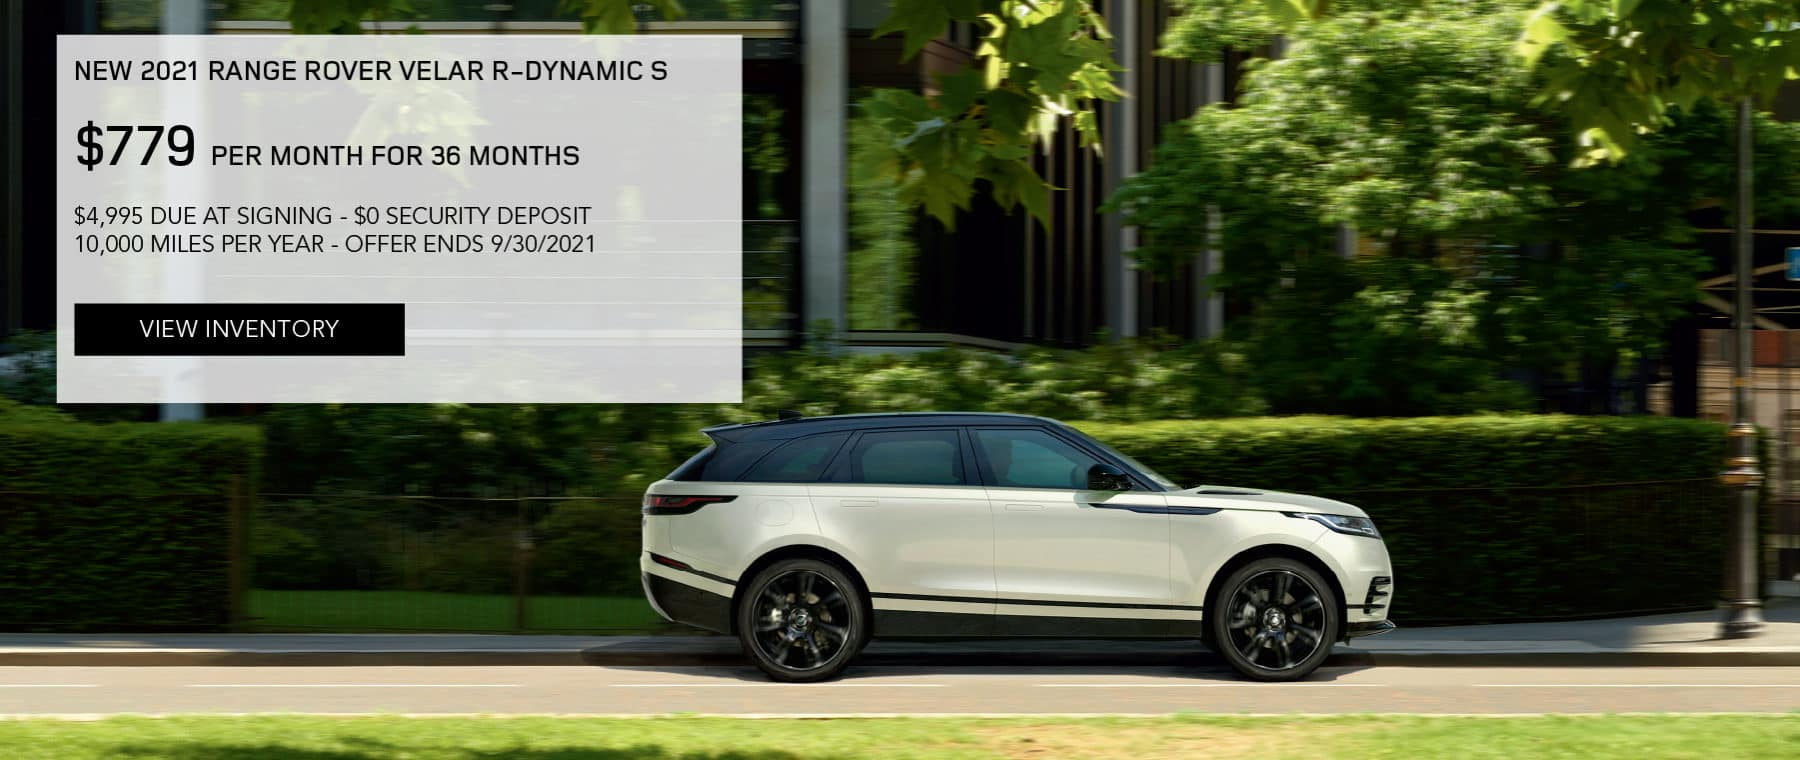 NEW 2021 RANGE ROVER VELAR R-DYNAMIC S. $779 PER MONTH. 36 MONTH LEASE TERM. $4,995 CASH DUE AT SIGNING. $0 SECURITY DEPOSIT. 10,000 MILES PER YEAR. EXCLUDES RETAILER FEES, TAXES, TITLE AND REGISTRATION FEES, PROCESSING FEE AND ANY EMISSION TESTING CHARGE. OFFER ENDS 9/30/2021. VIEW INVENTORY. SILVER RANGE ROVER VELAR PARKED IN CITY.